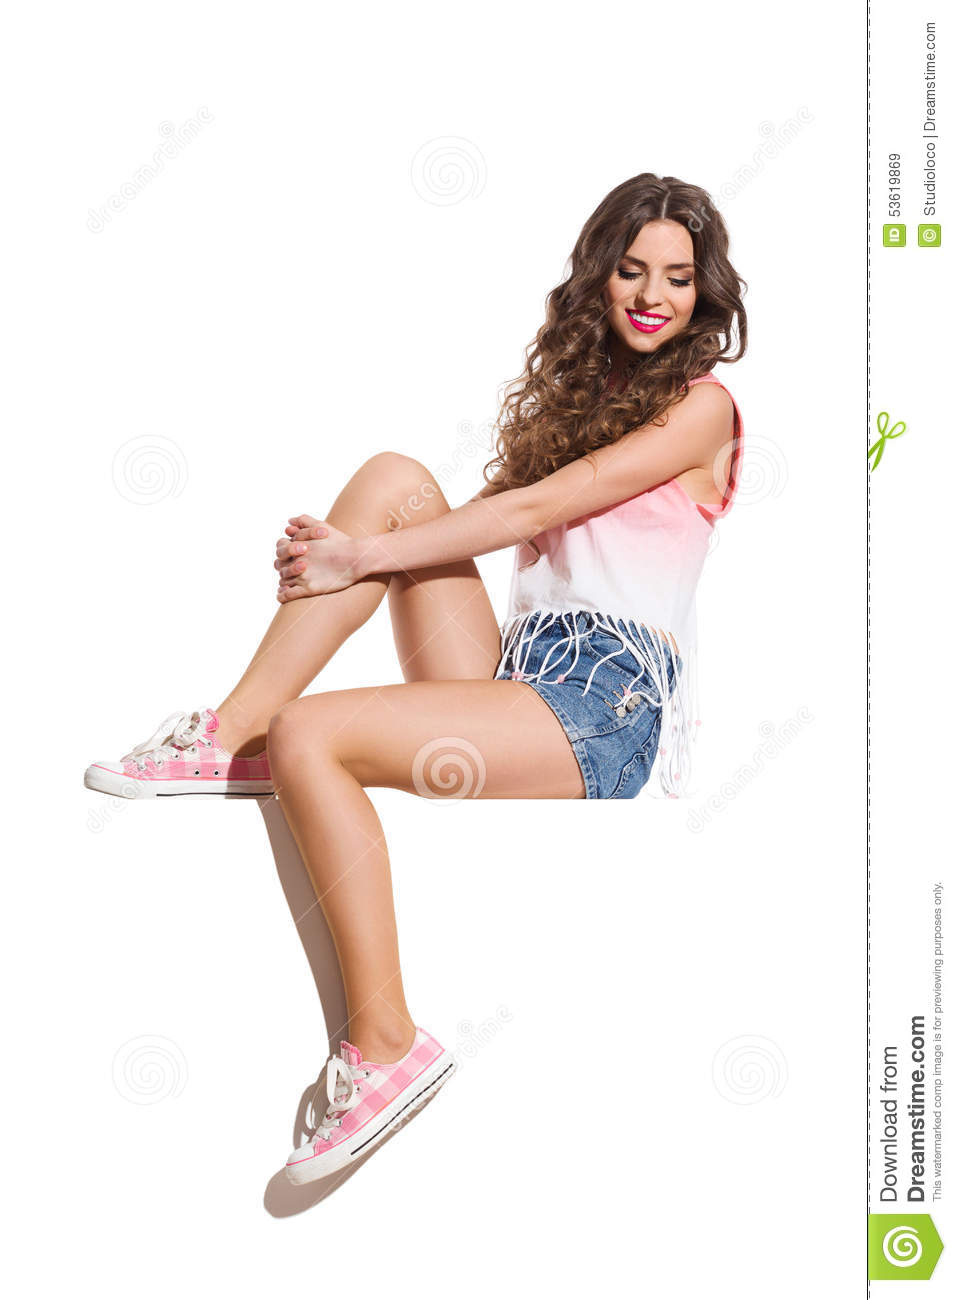 Sexy girl in sneakers